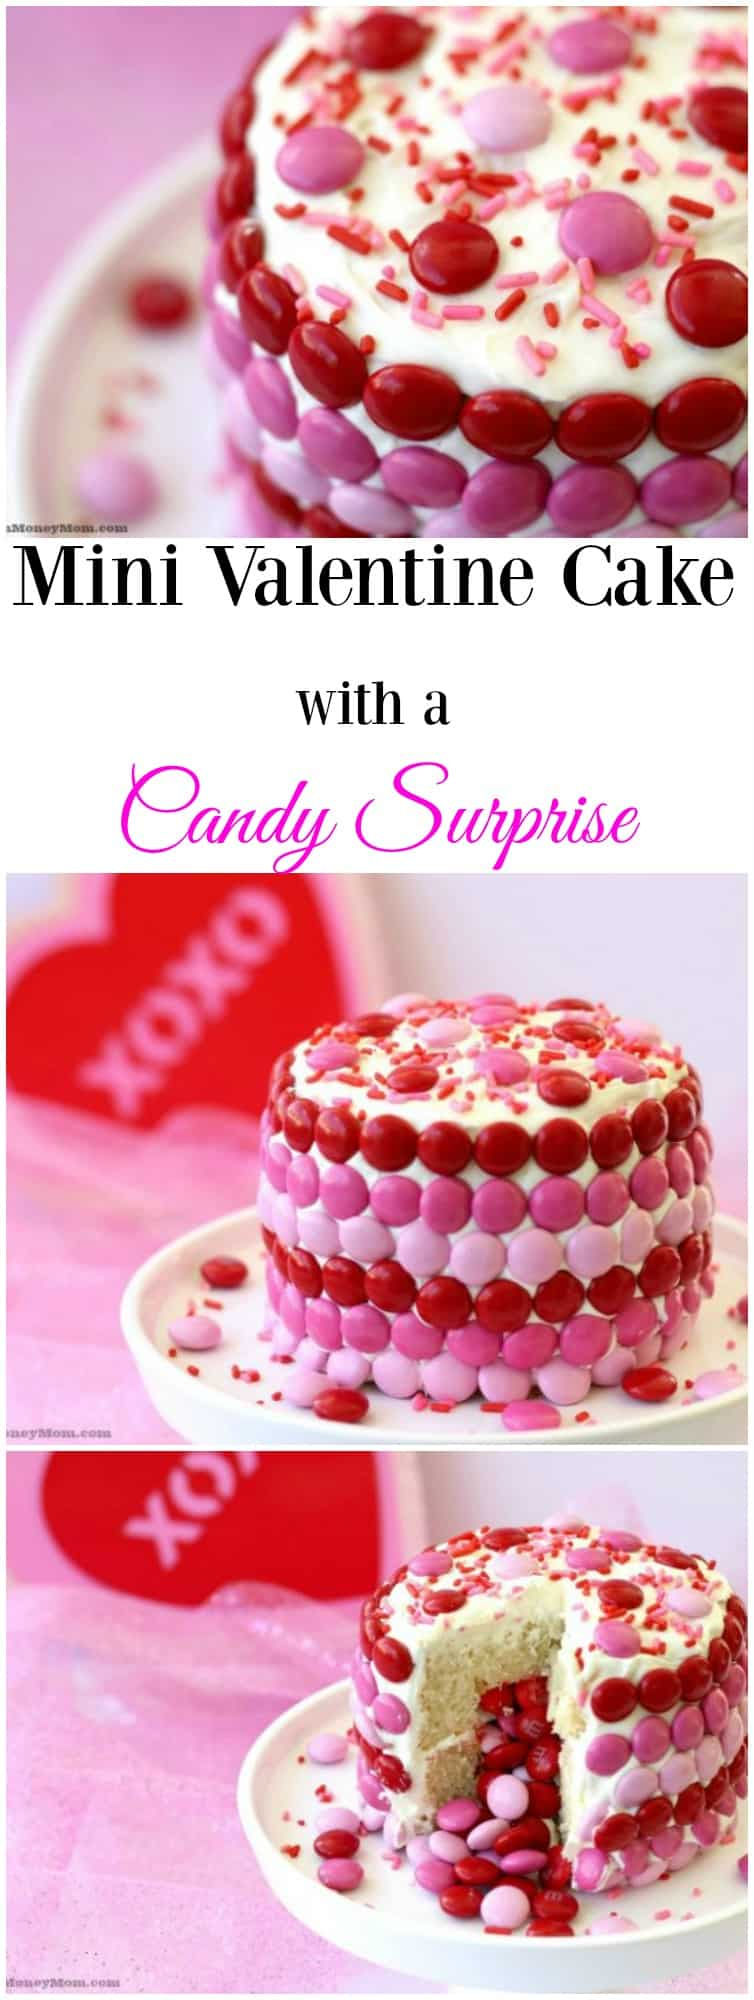 A fun Mini Valentine Cake with a Candy Surprise is the perfect dessert for your Valentine.